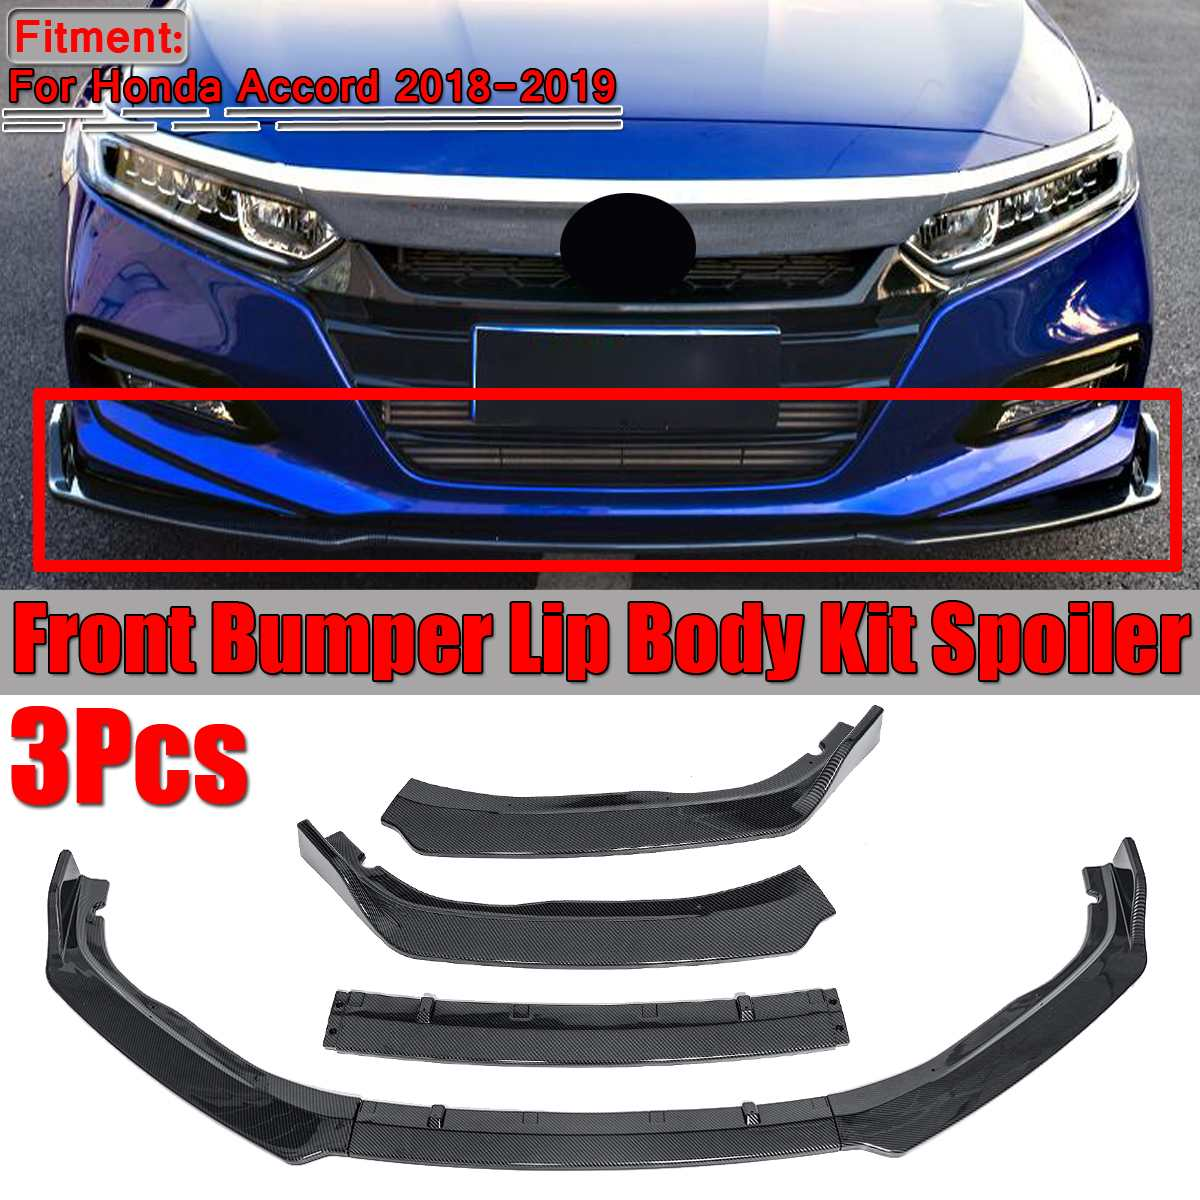 High Quality 3PCS Car Front Bumper Lip Chin Body Kit Spoiler For Honda For Accord 2018 2019 Front Bumper Lip Splitter Diffuser|Bumpers| |  - title=